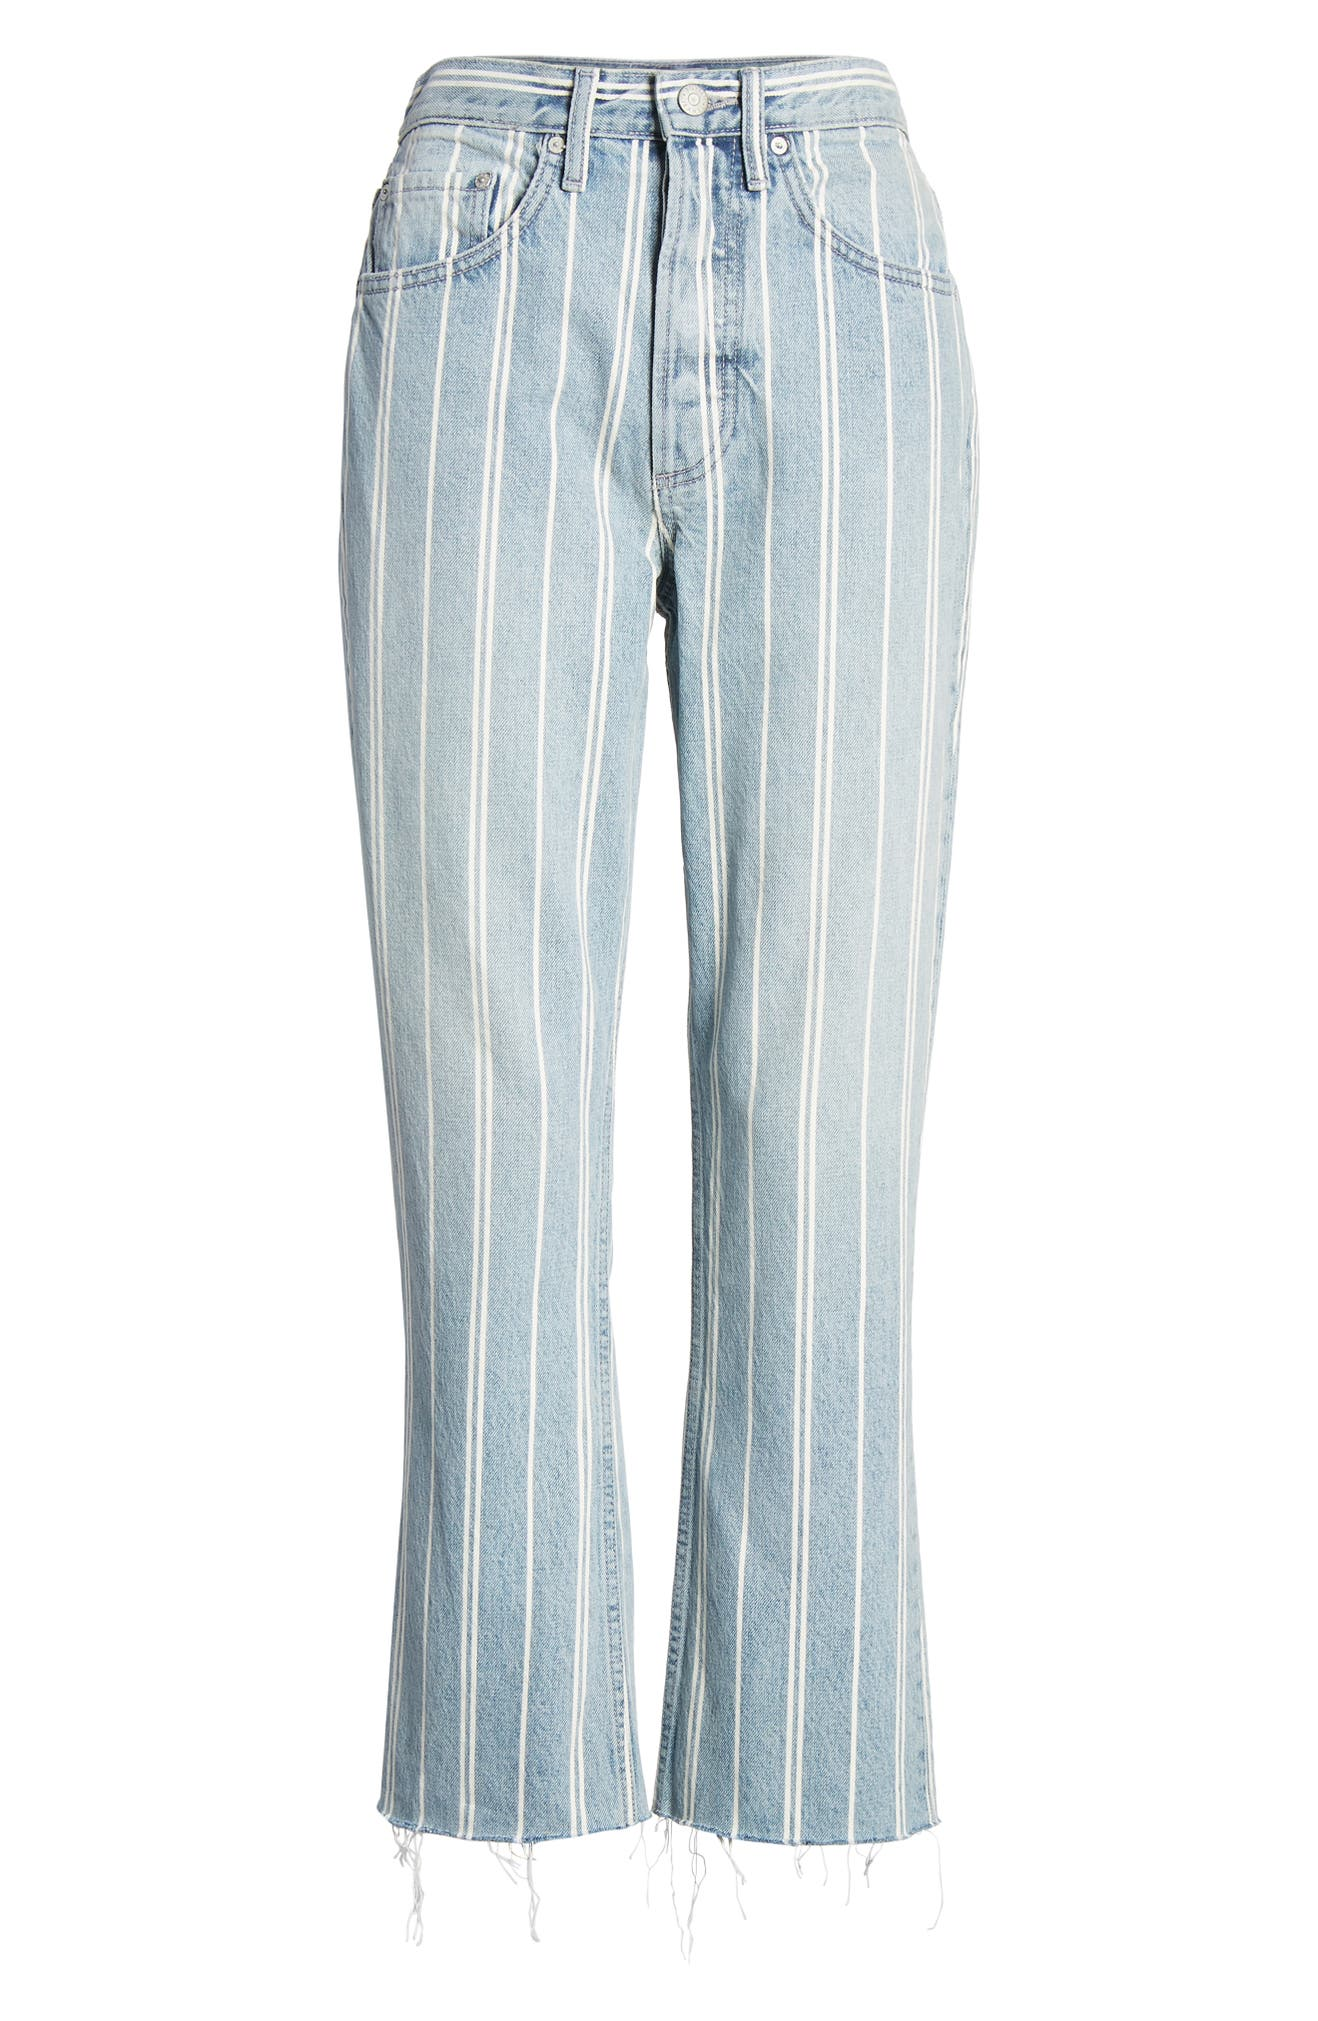 The Darcy Stripe Super High Waist Crop Flare Jeans